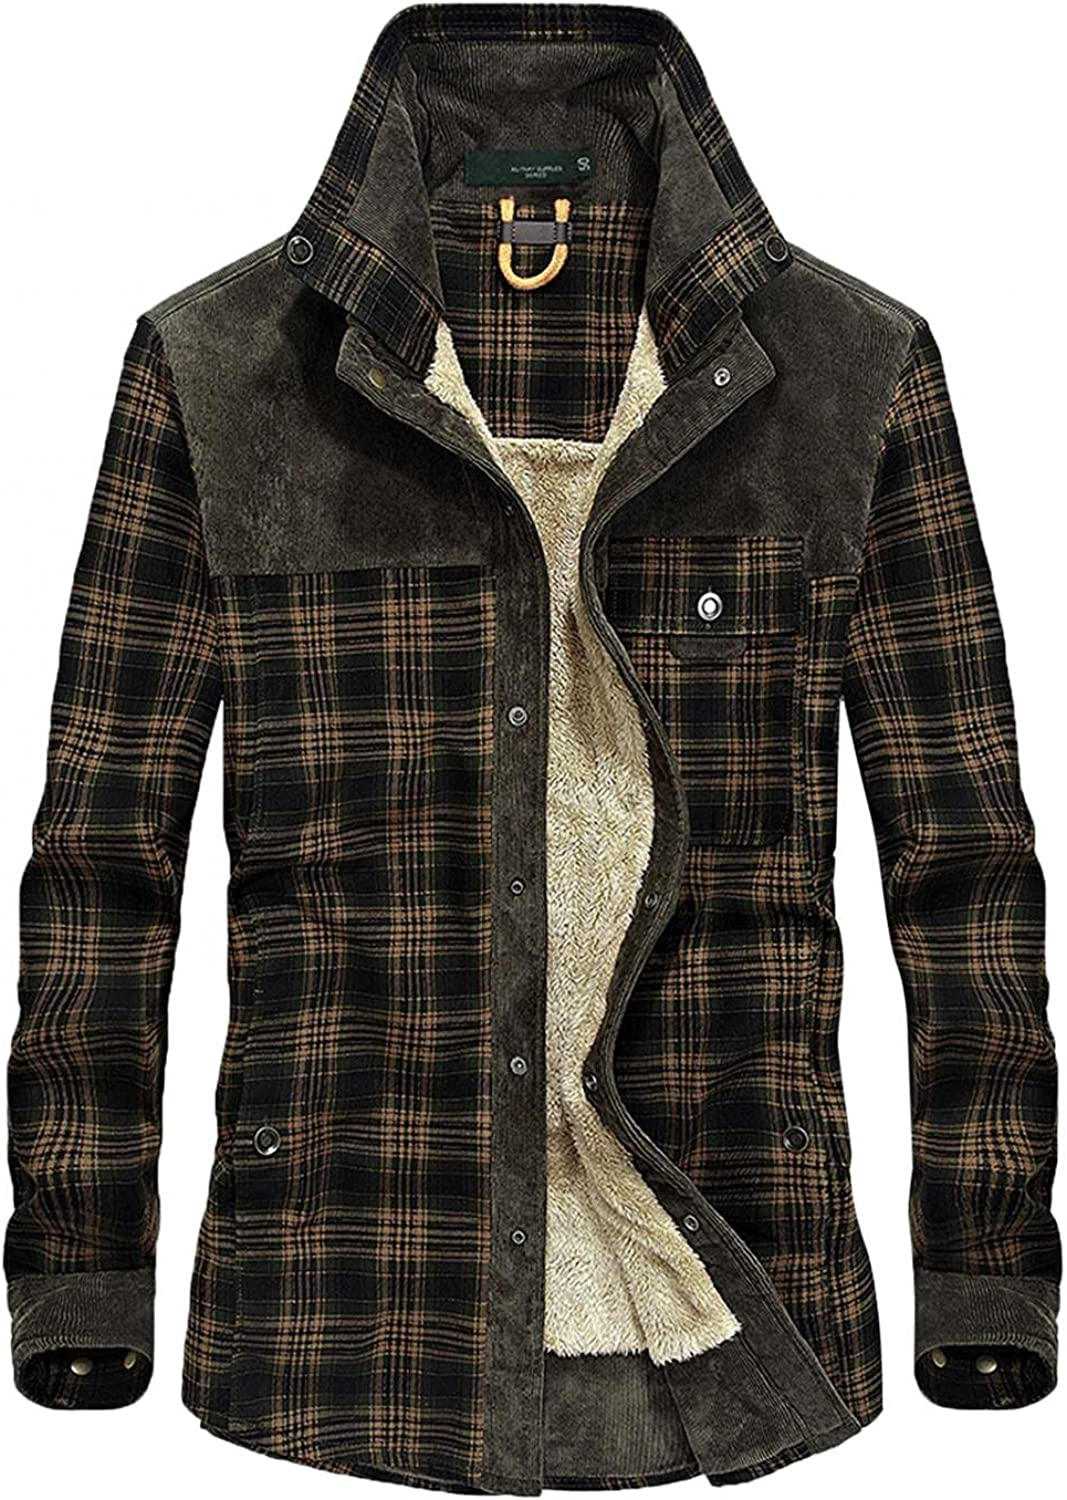 Men's Casual Sherpa Lined Jackets Max 63% OFF Thic Plaid Pocket Winter Lapel Nippon regular agency